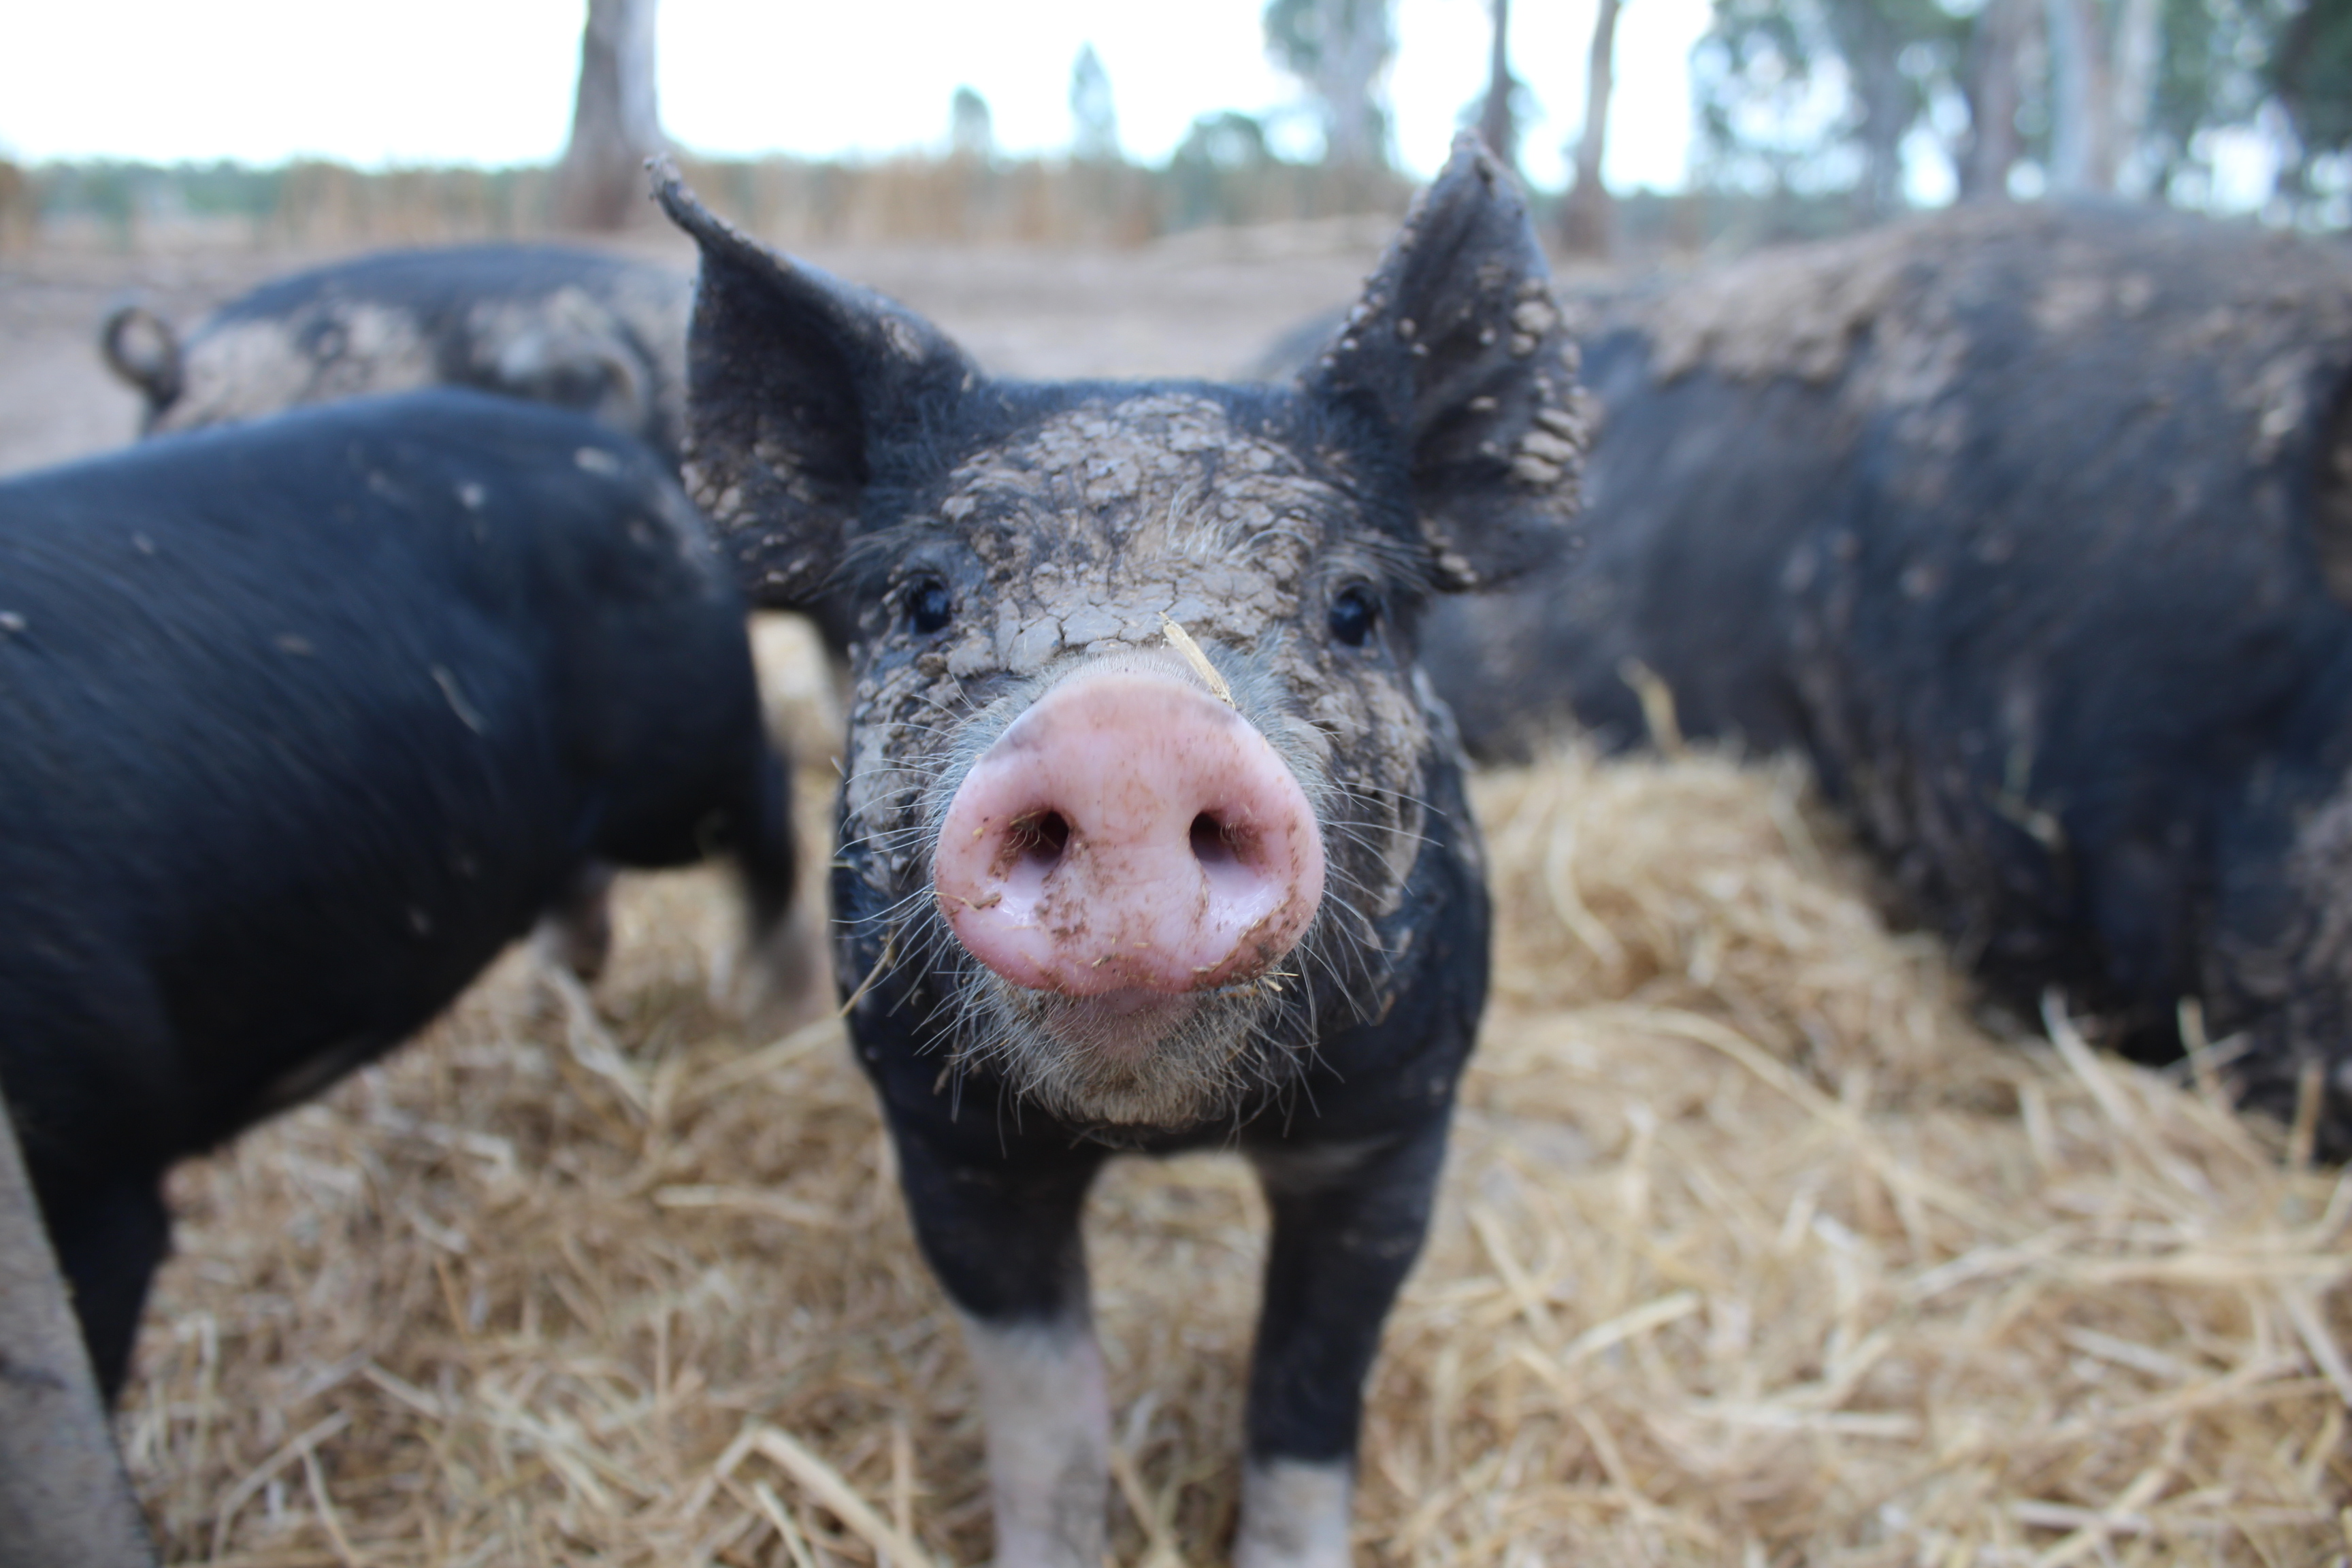 Farmers strive for more palatable choices getting meat to your table